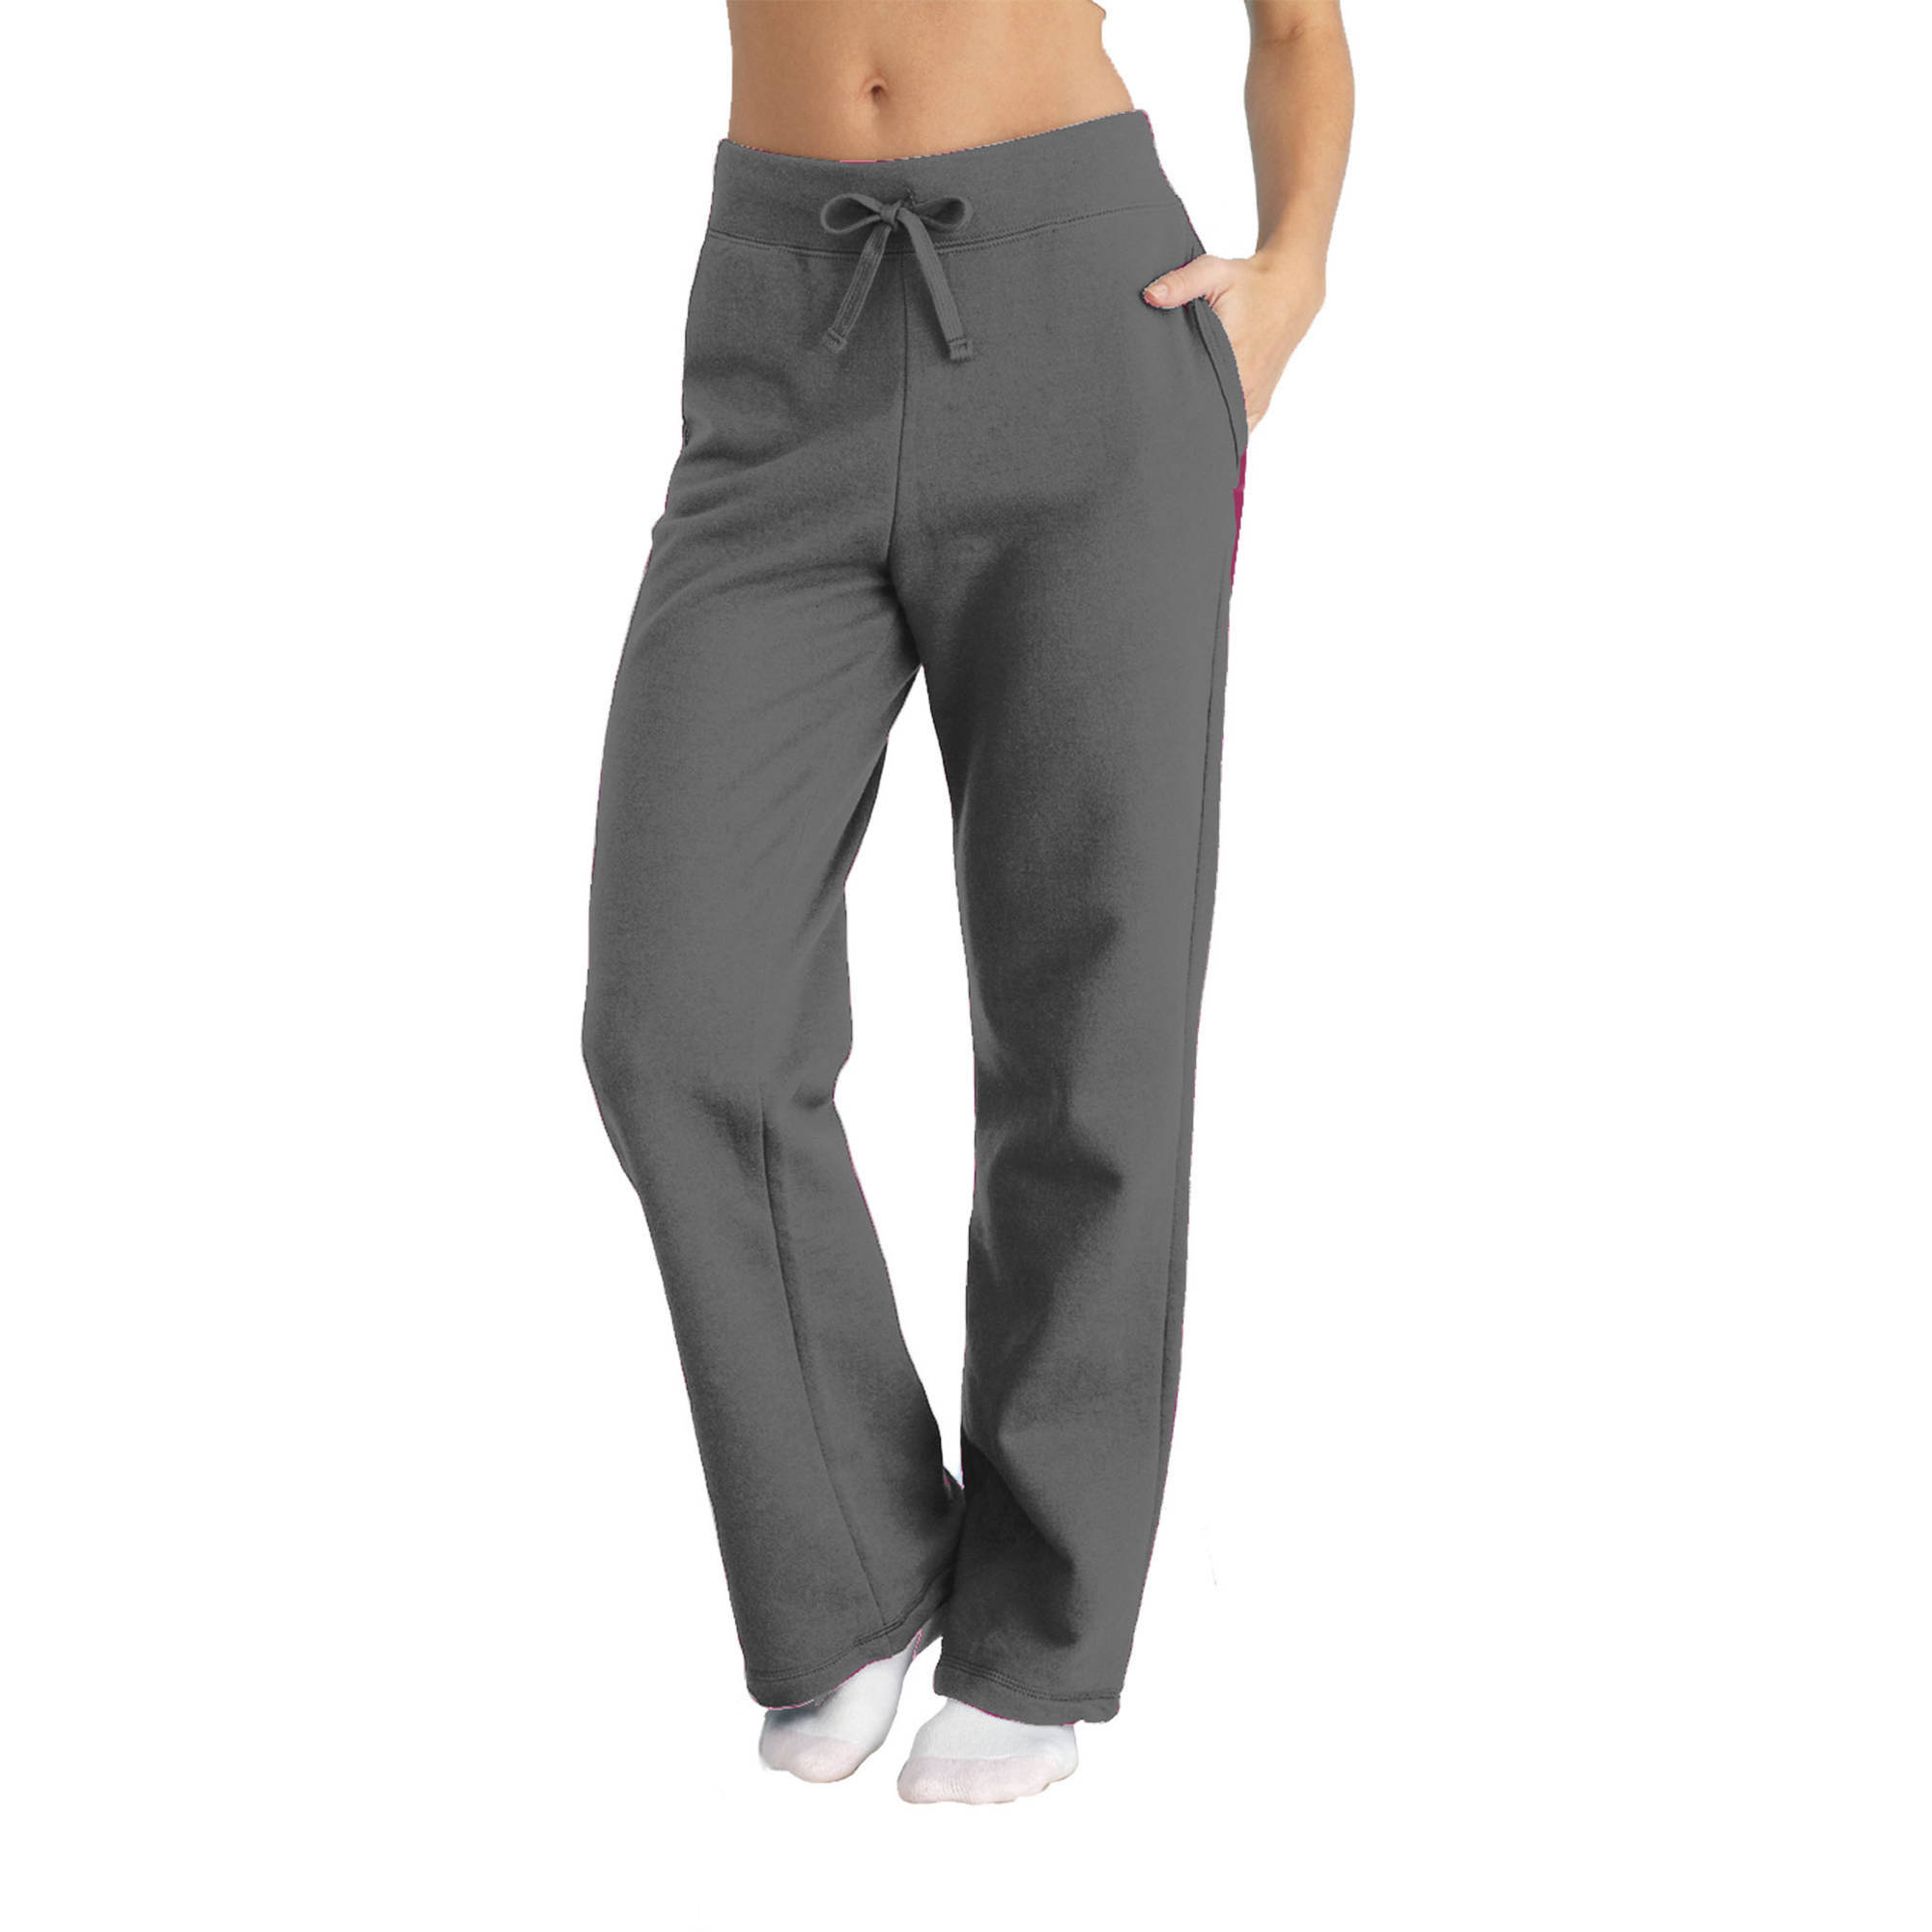 Gildan Women's Fleece Sweatpants With Pockets